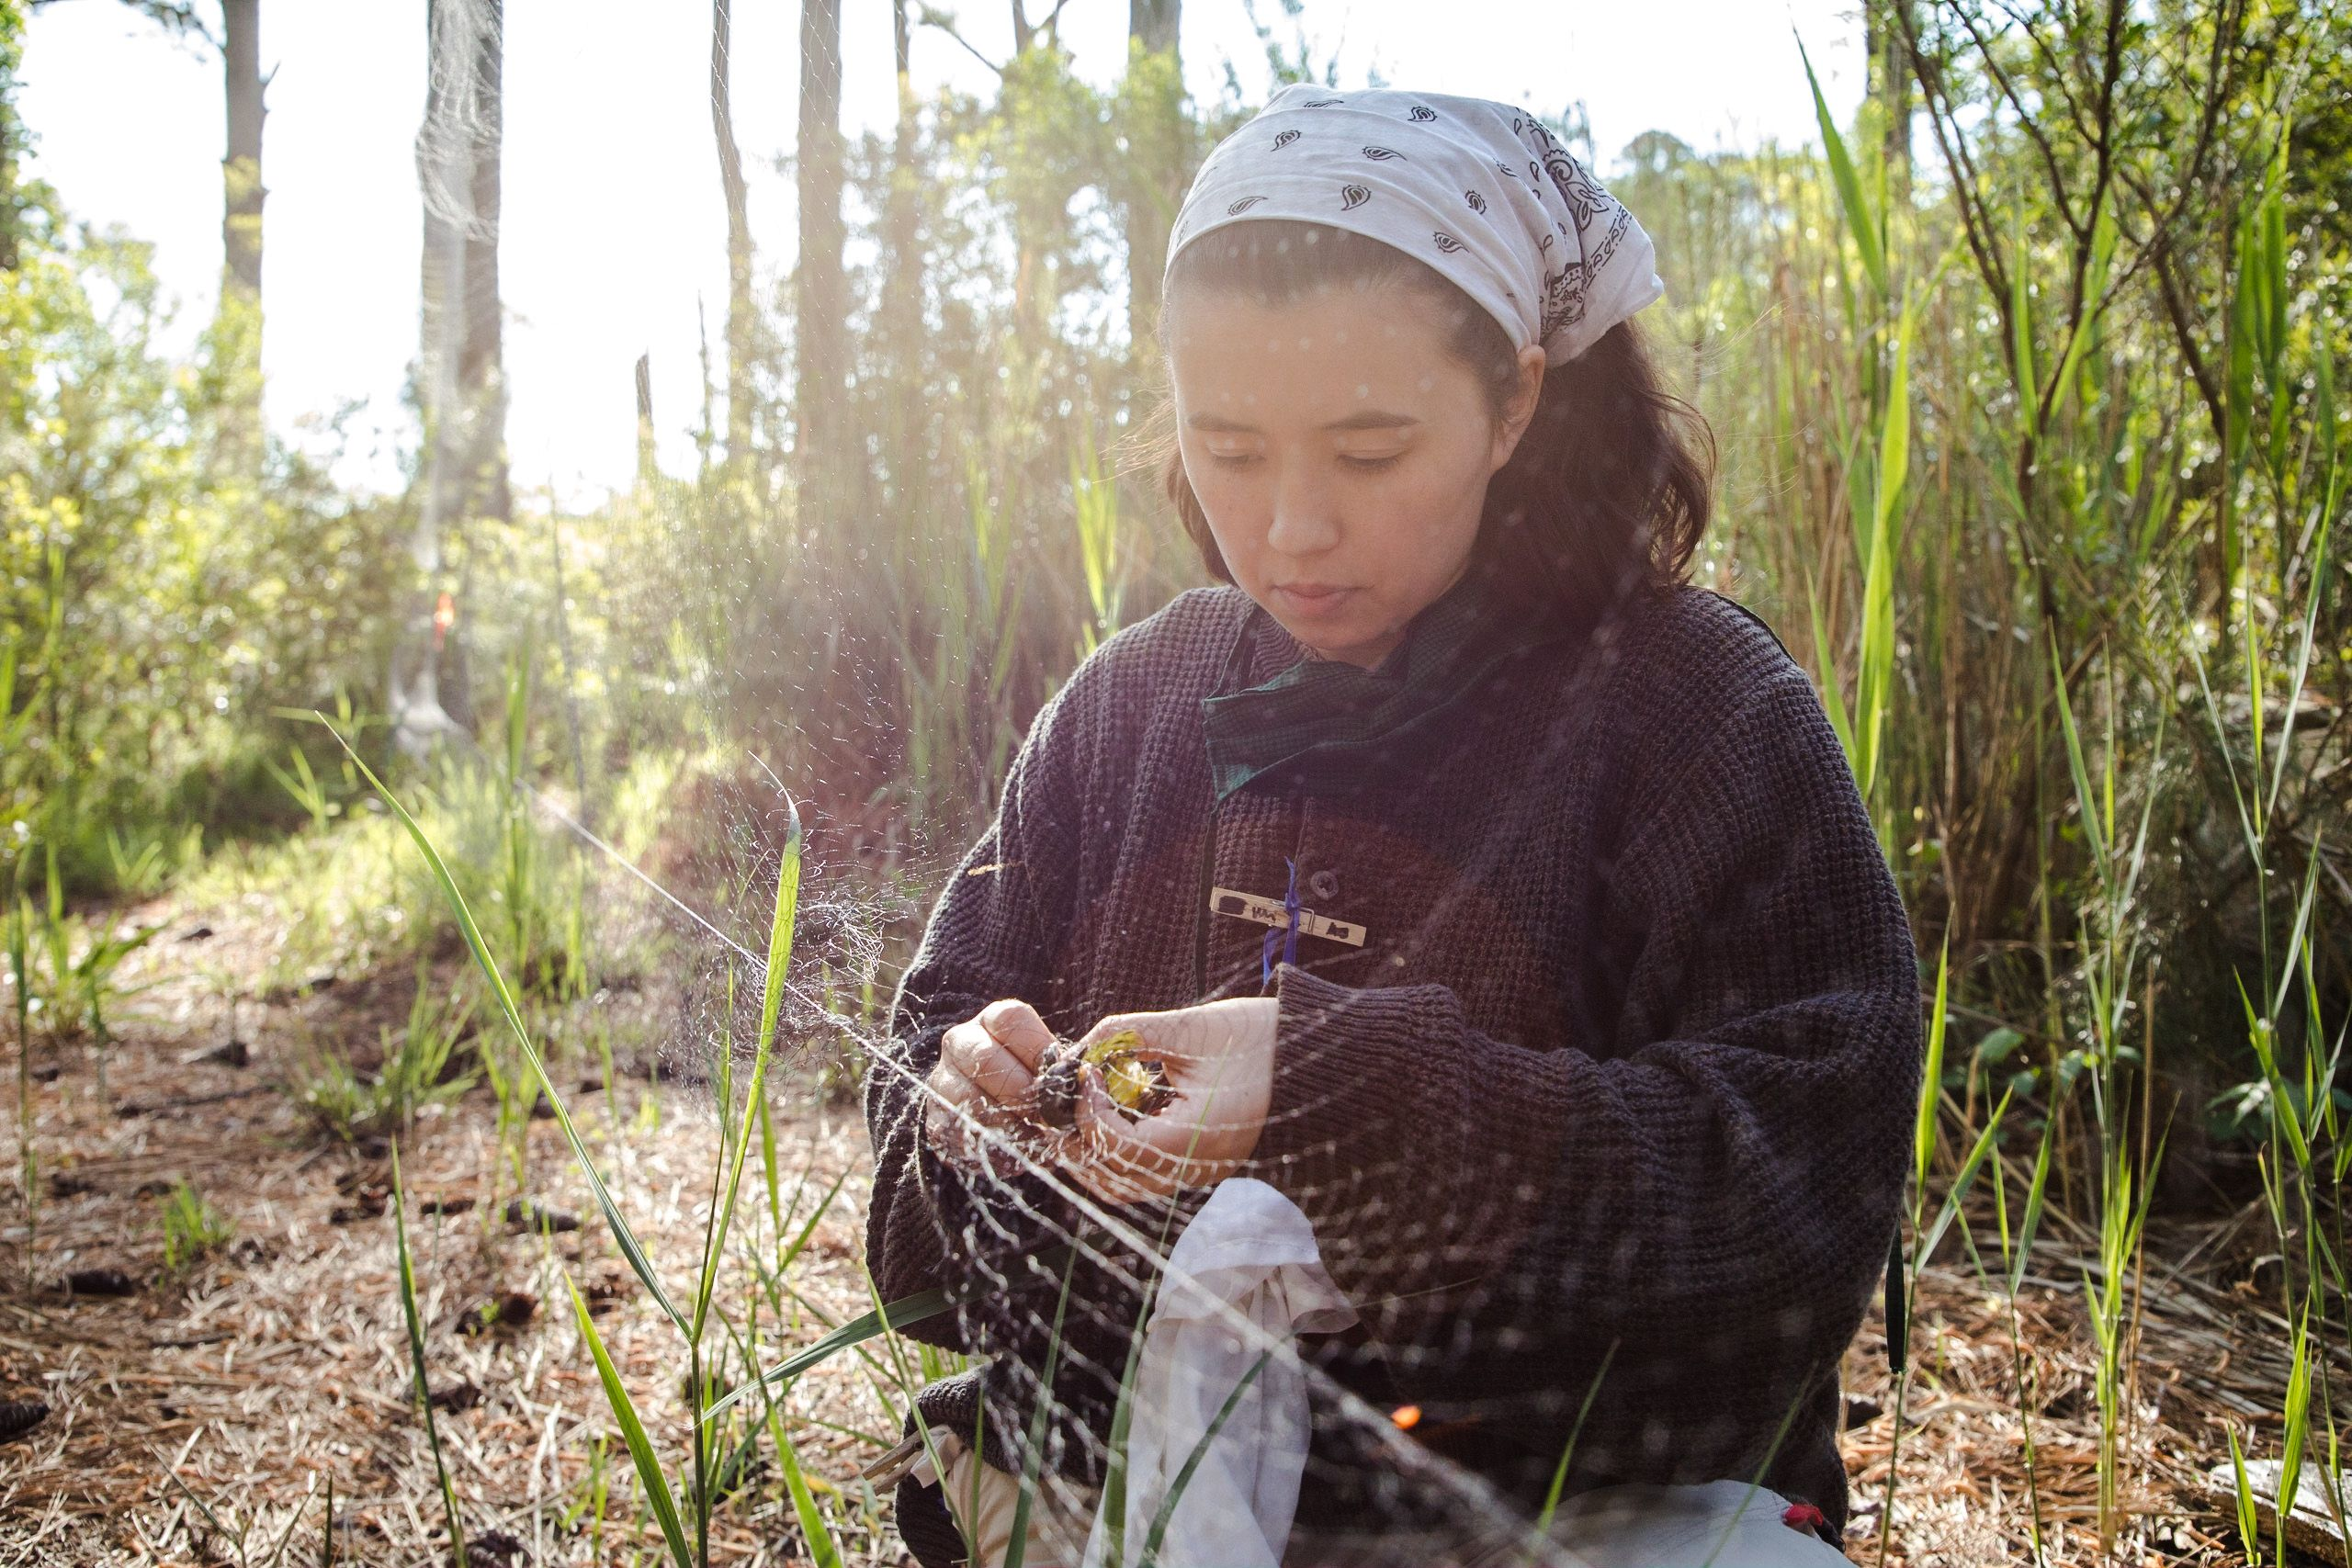 A woman kneels on the ground gently freeing a small bird from a long thin net that has been strung between trees to catch birds for a banding project.